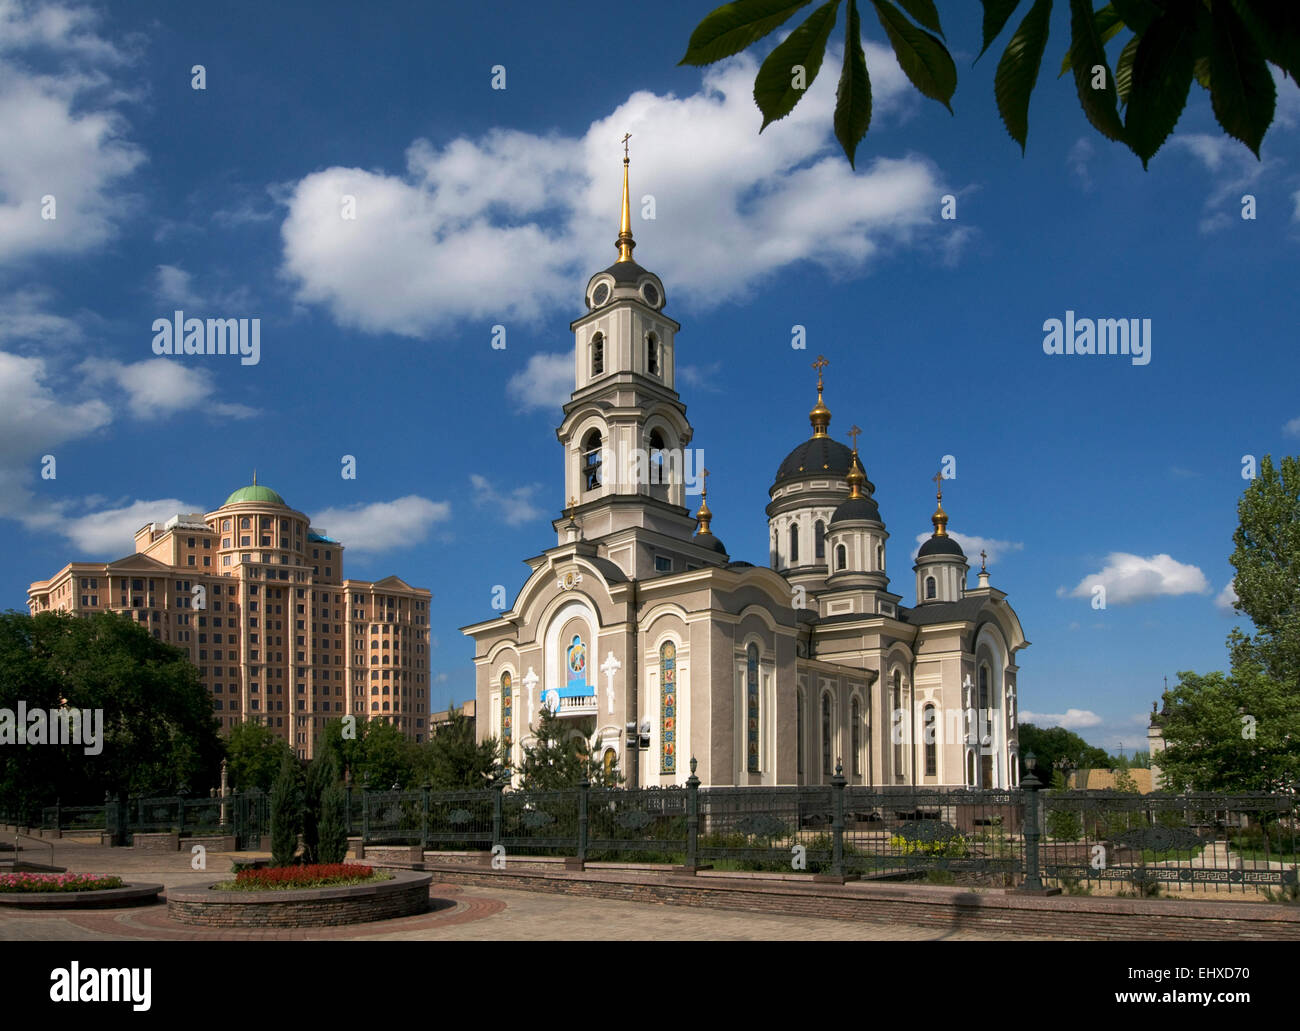 Architecture of Donetsk city (Ukraine, disputed territory). - Stock Image